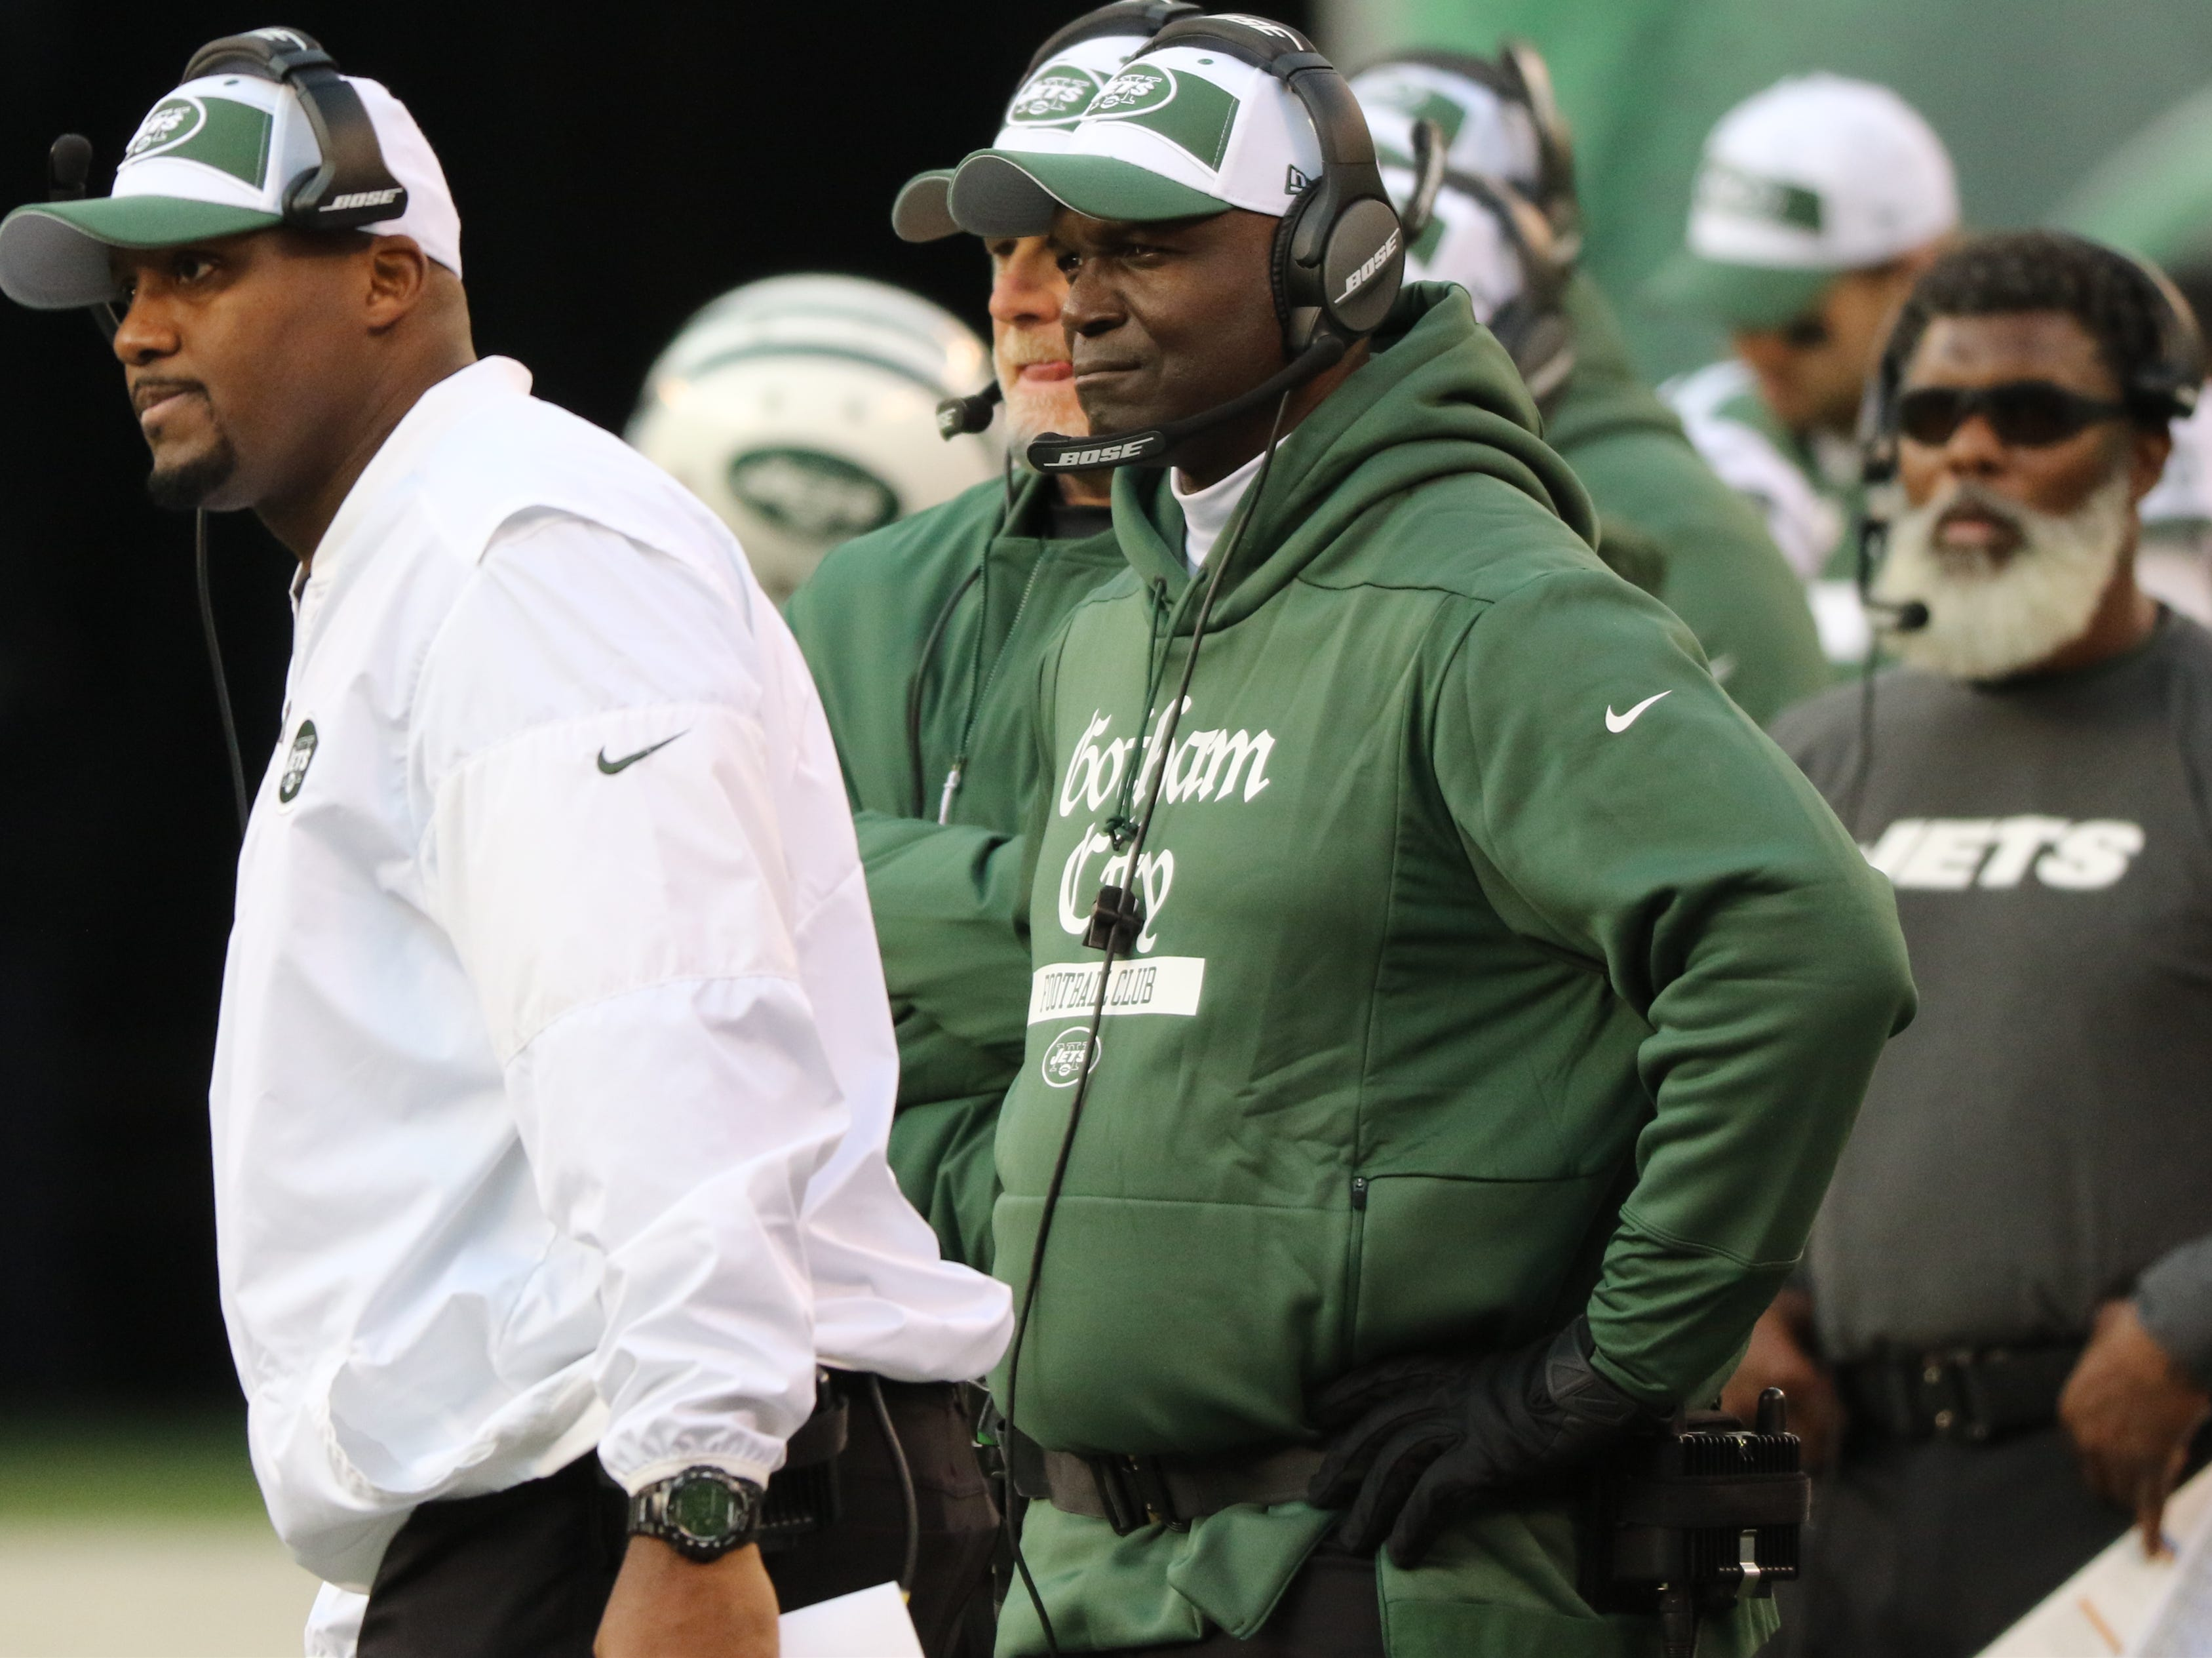 Jets Head Coach, Todd Bowles and others can be seen during the second half. Sunday, November 25, 2018